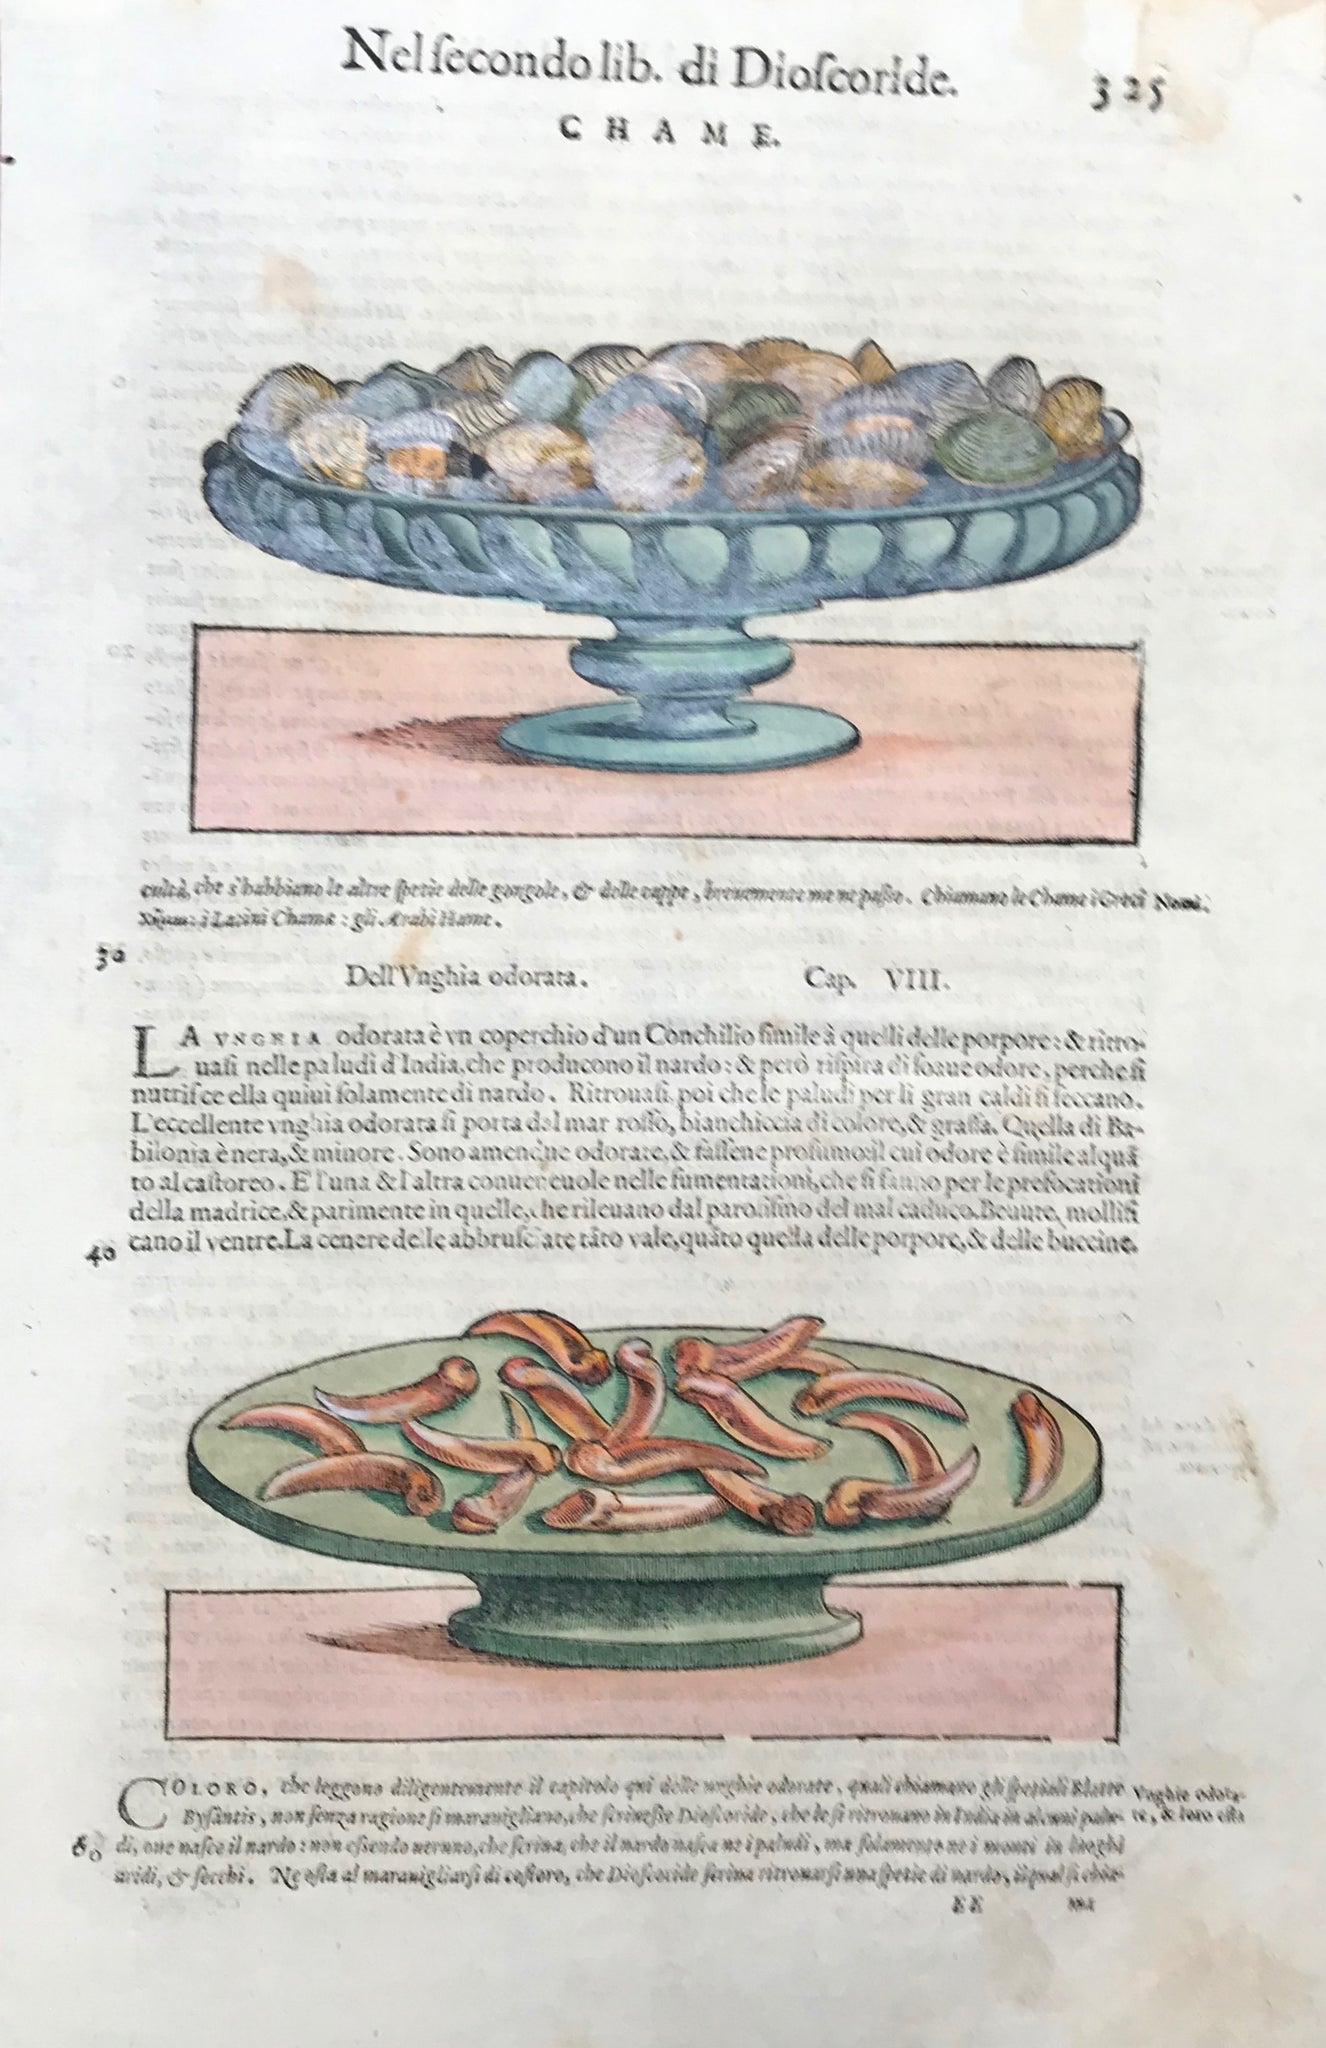 Chame  Woodcut by Pietro Andrea Mattioli (1500-1577). Published 1571. Reverse side is printed with text in Italian. Fine, recent hand coloring. Some light scattered spotting and light age toning. 400 years have left their signs of age!